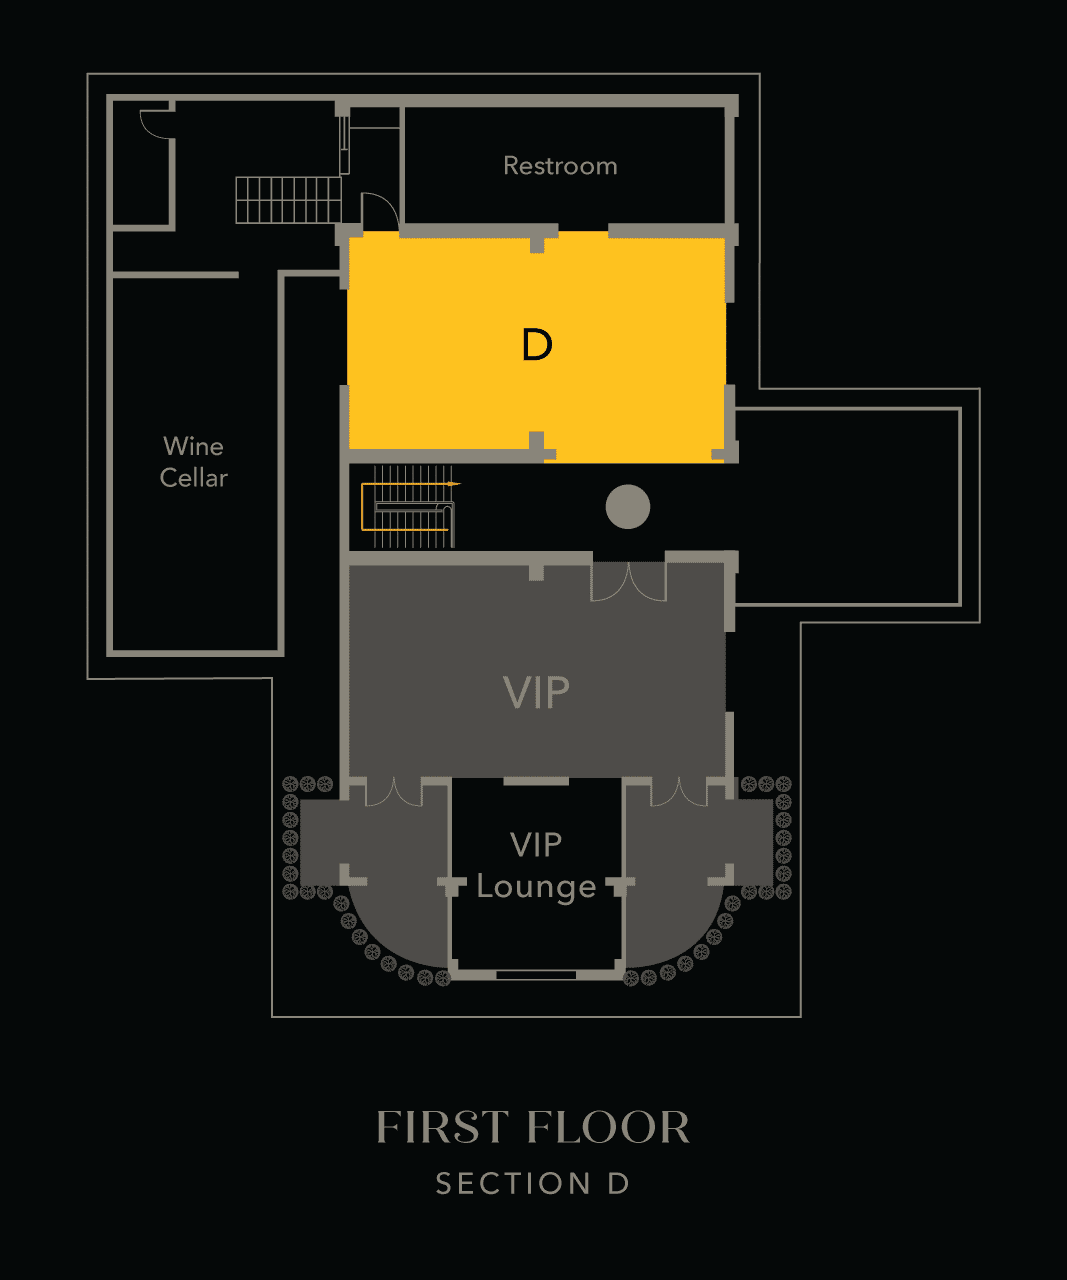 Section D - First Floor